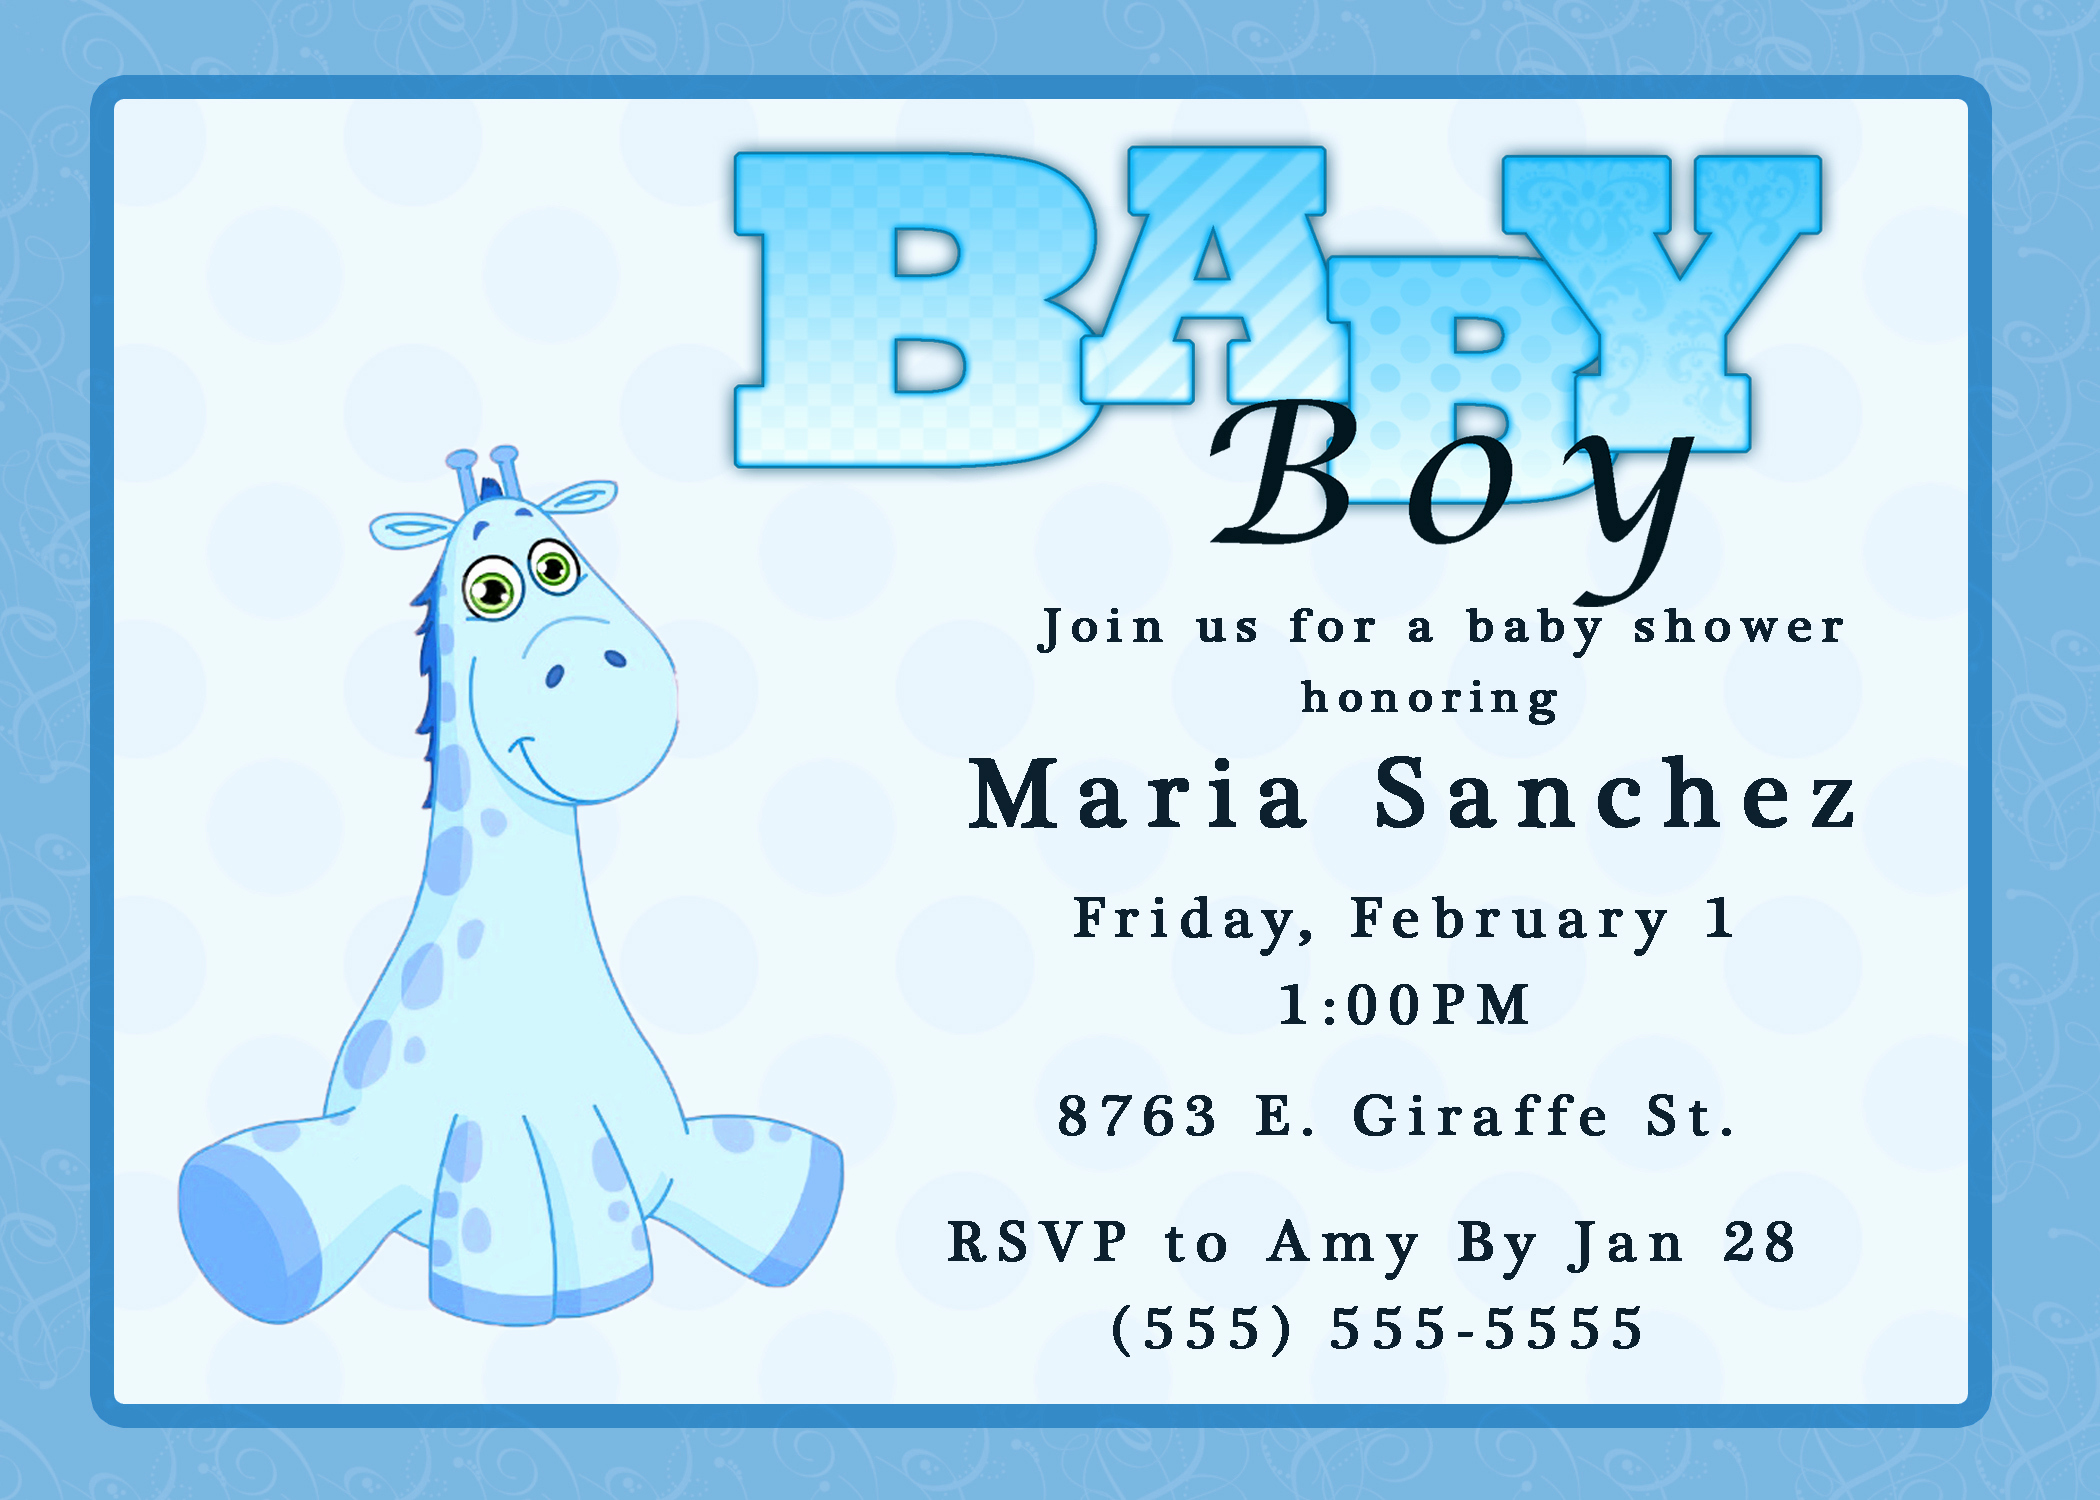 Baby Boy Shower Invitation Wording Unique Free Baby Boy Shower Invitations Templates Baby Boy